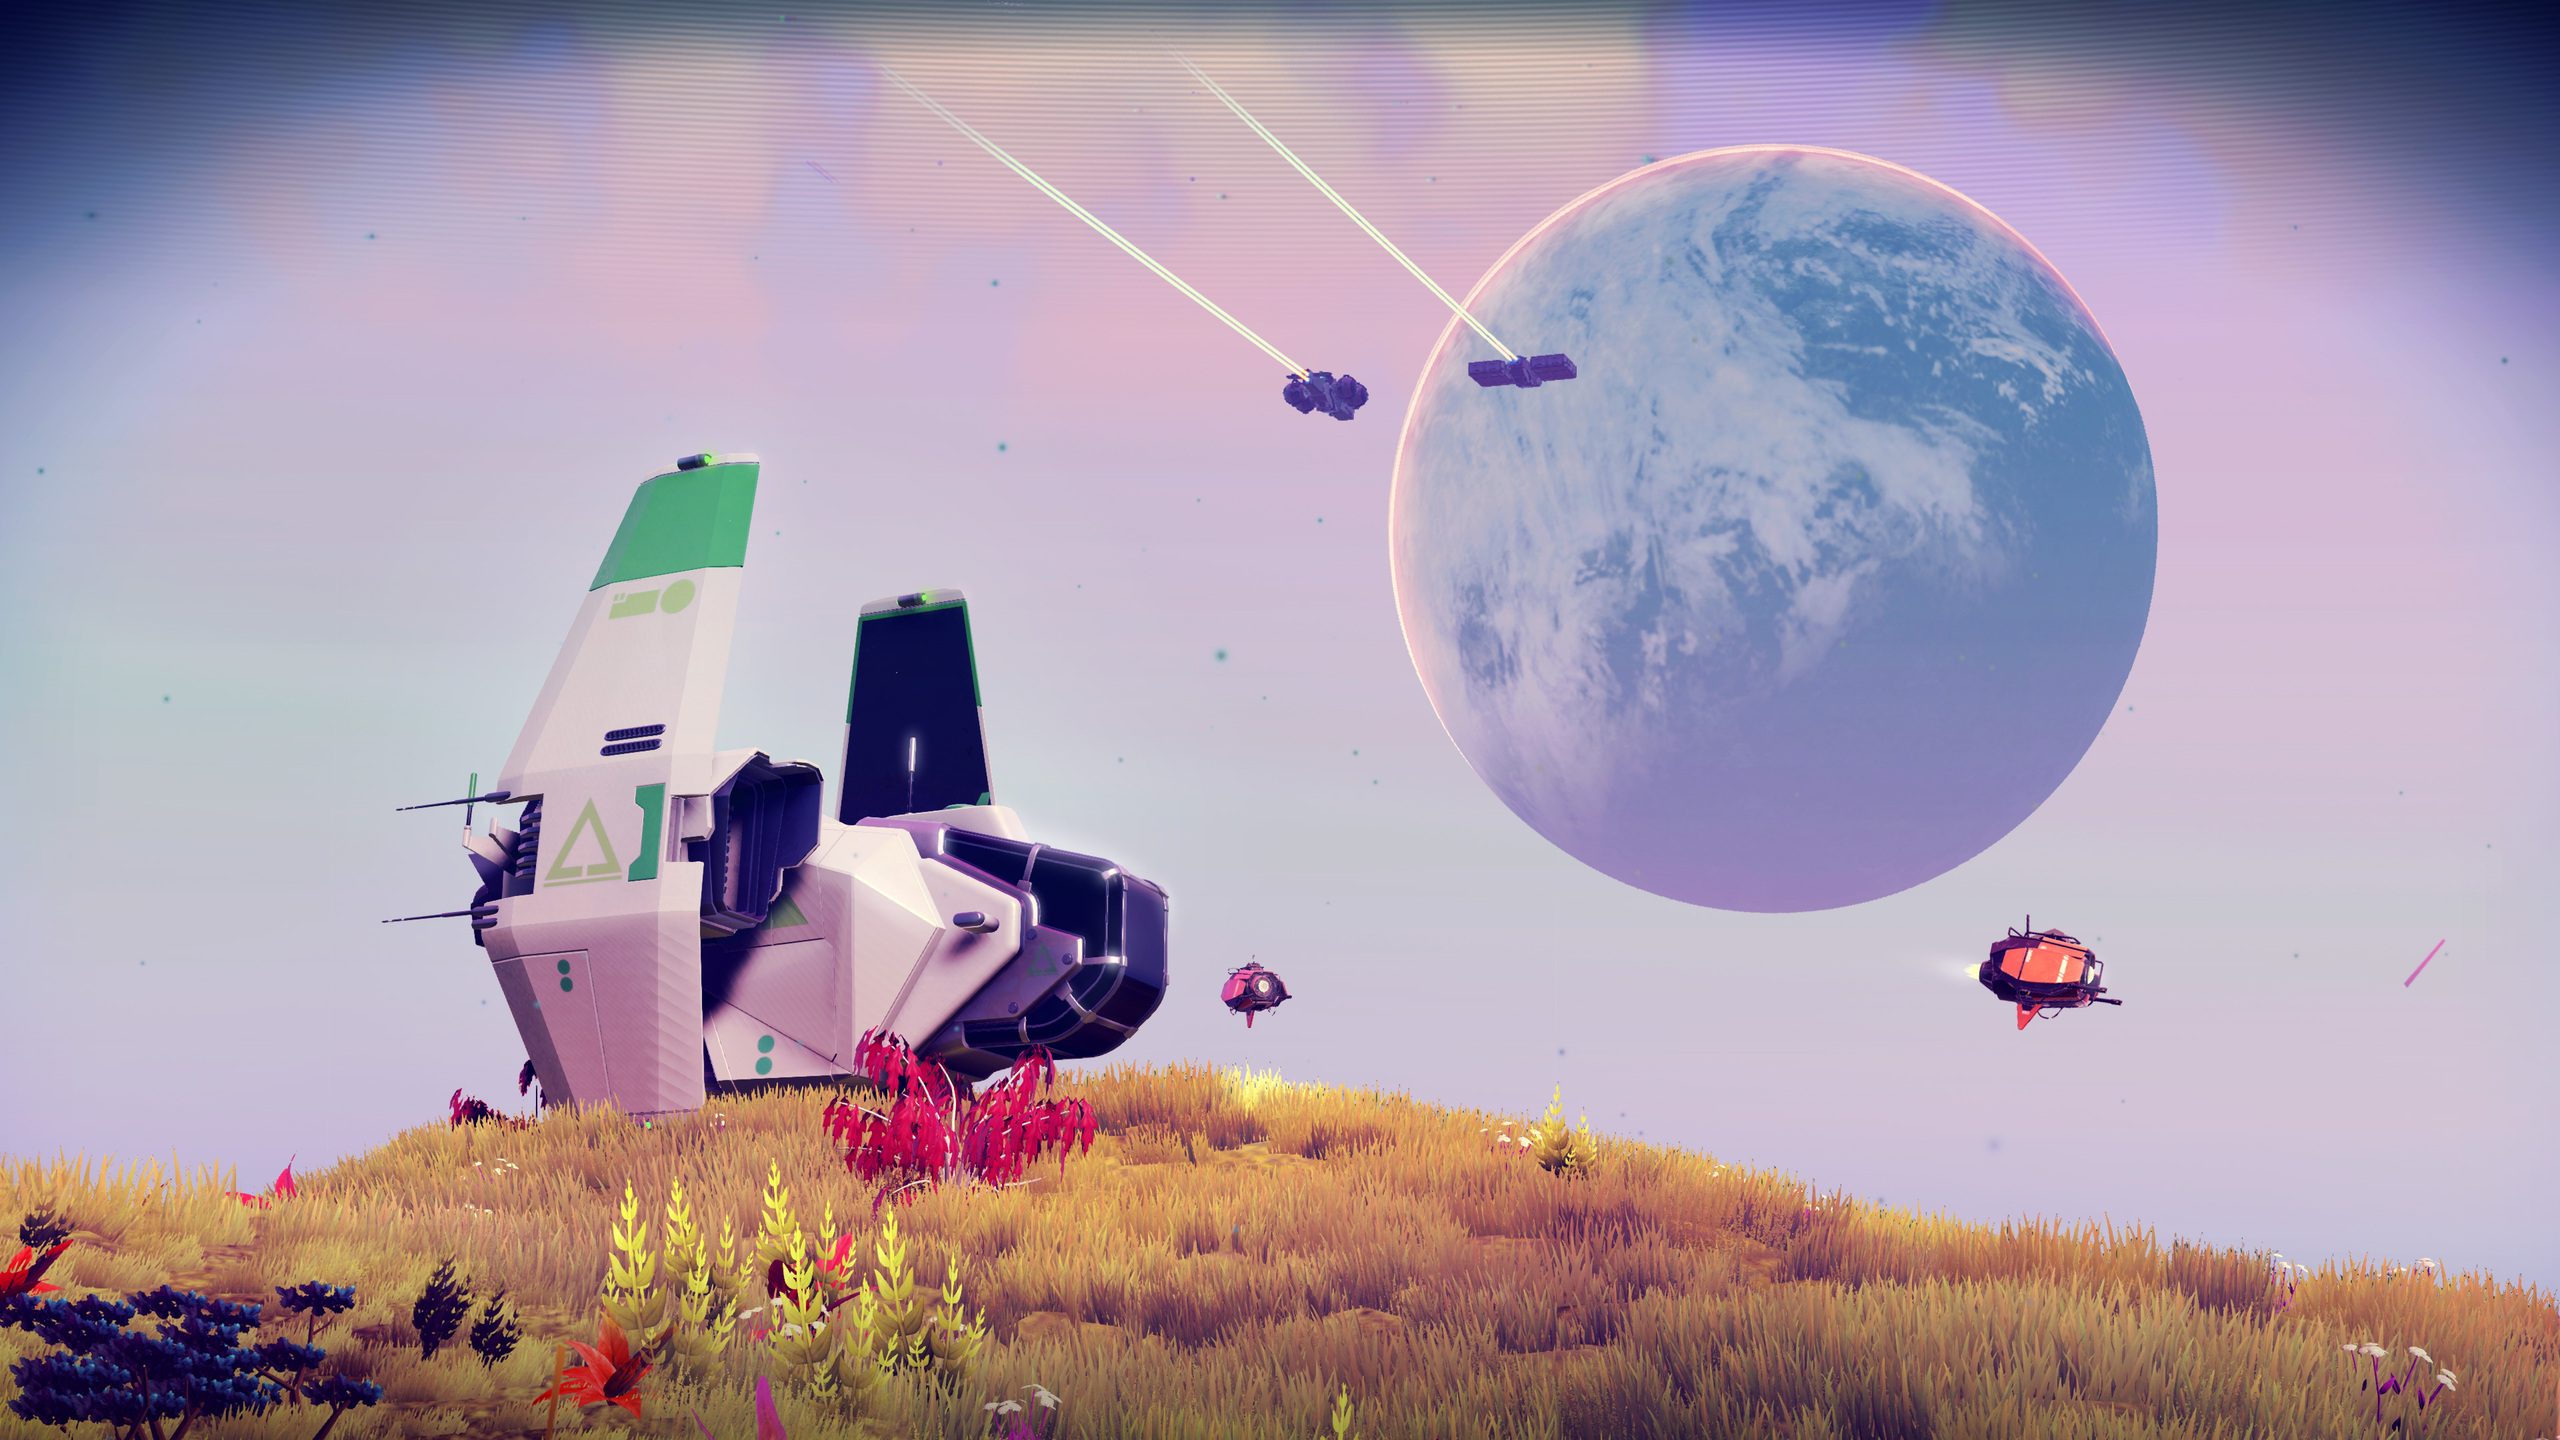 2560x1440 No Mans Sky 4k 1440p Resolution Hd 4k Wallpapers Images